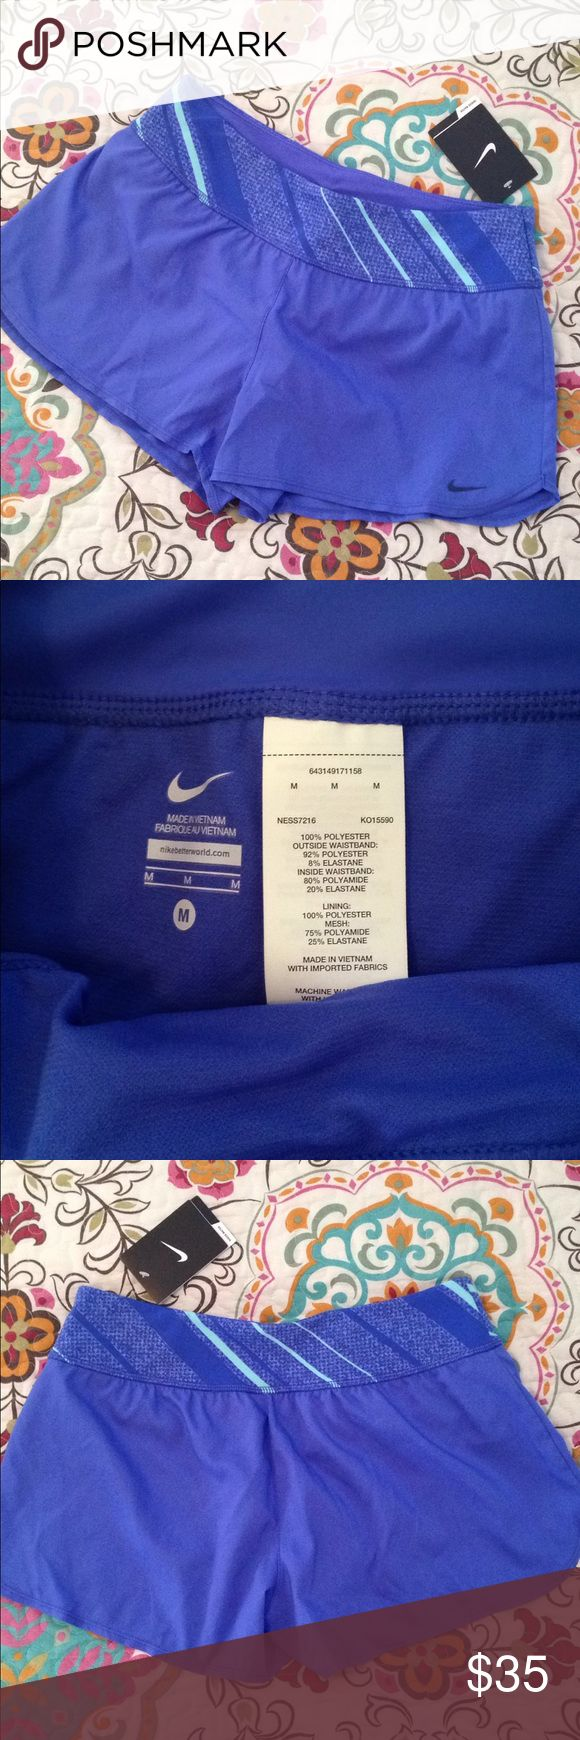 Nike Swim Shorts Treated with Hydra Void to shed water and help keep you dry. Perfect for swimming or indoor/outdoor activities. The hygiene liner is still attached. New with tags! Nike Swim